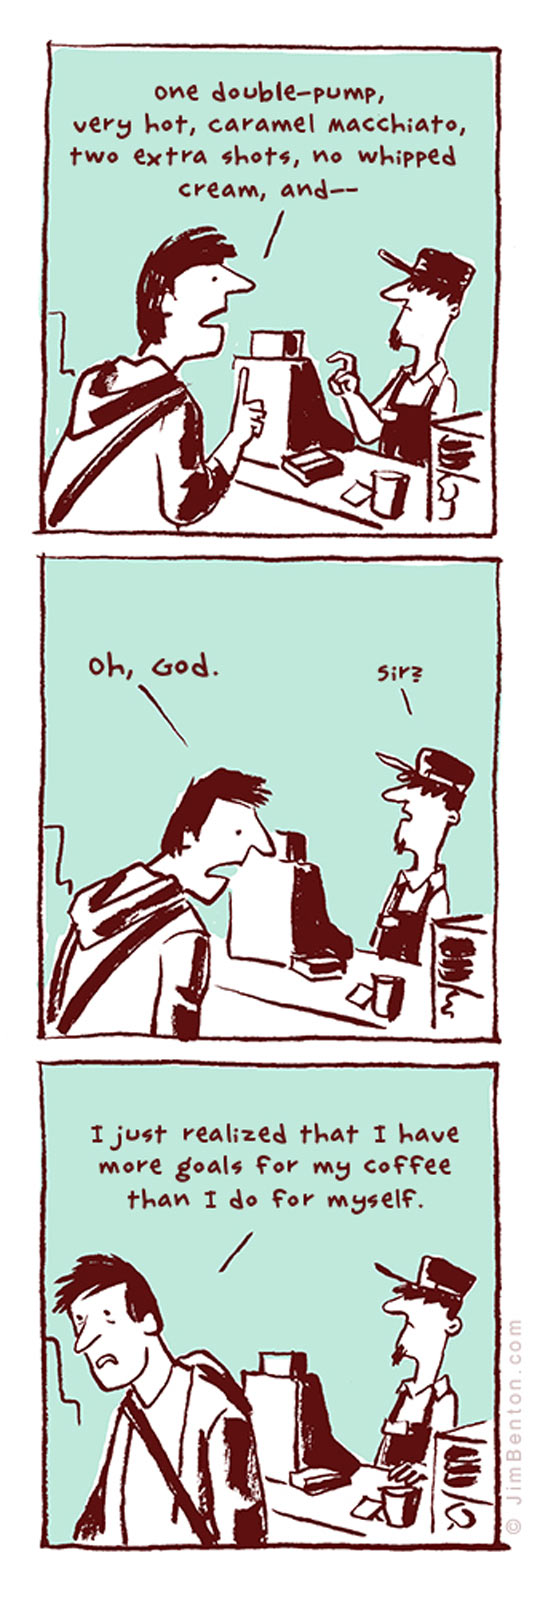 funny-guy-asking-coffee-goals-comic